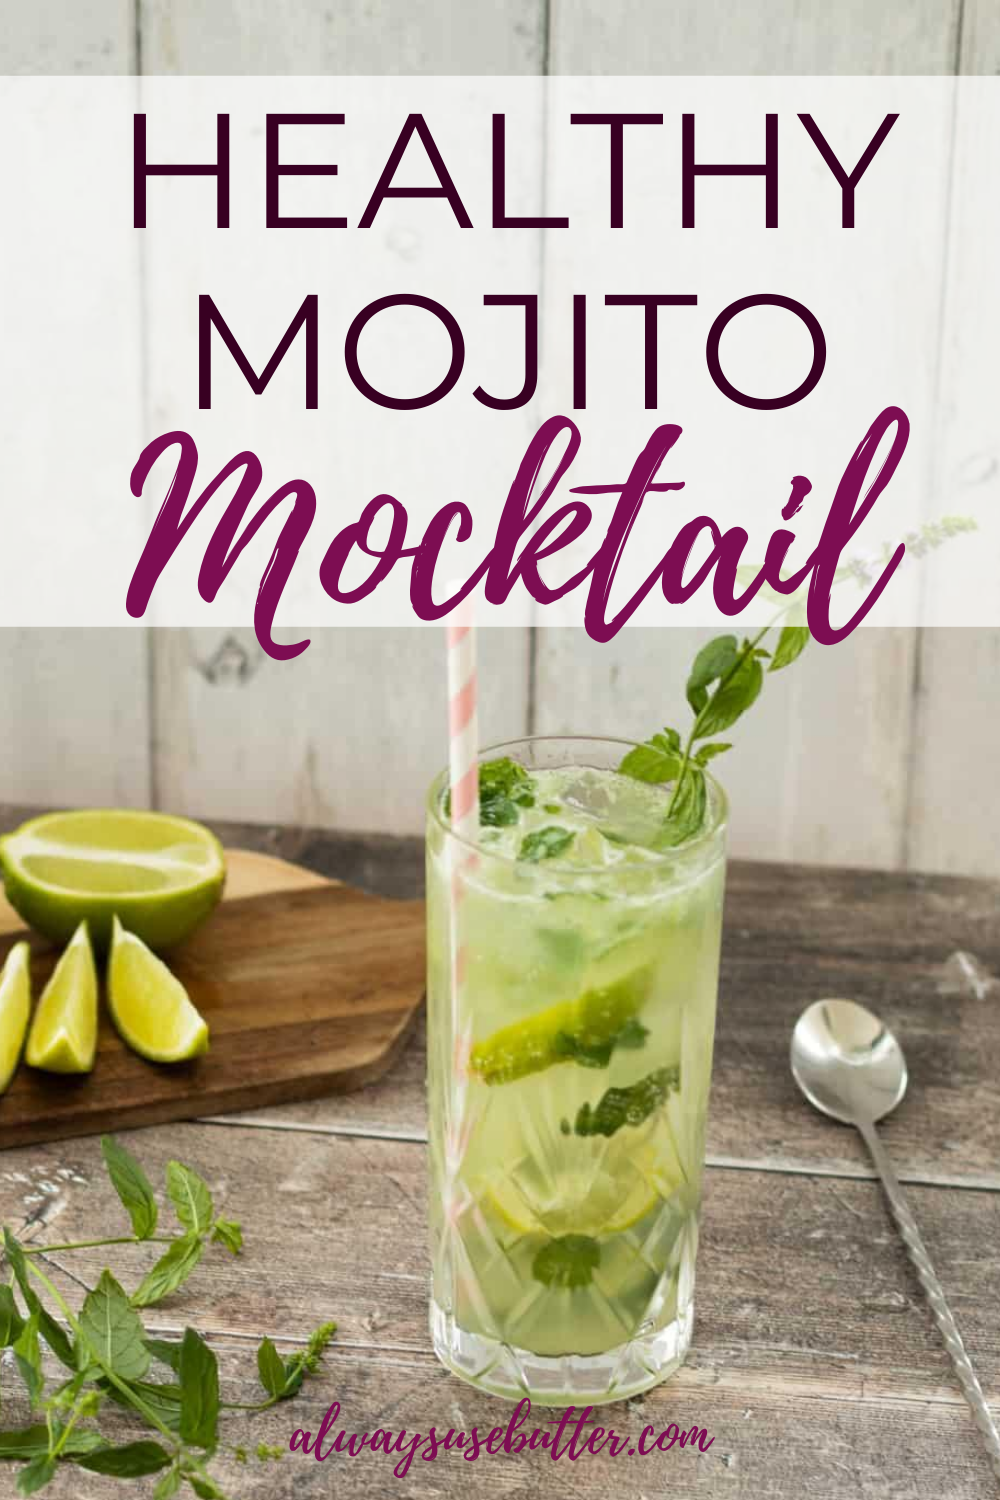 Healthy Mojito Mocktail Mojito Mocktail Fruit Infused Water Recipes Hot Drinks Recipes